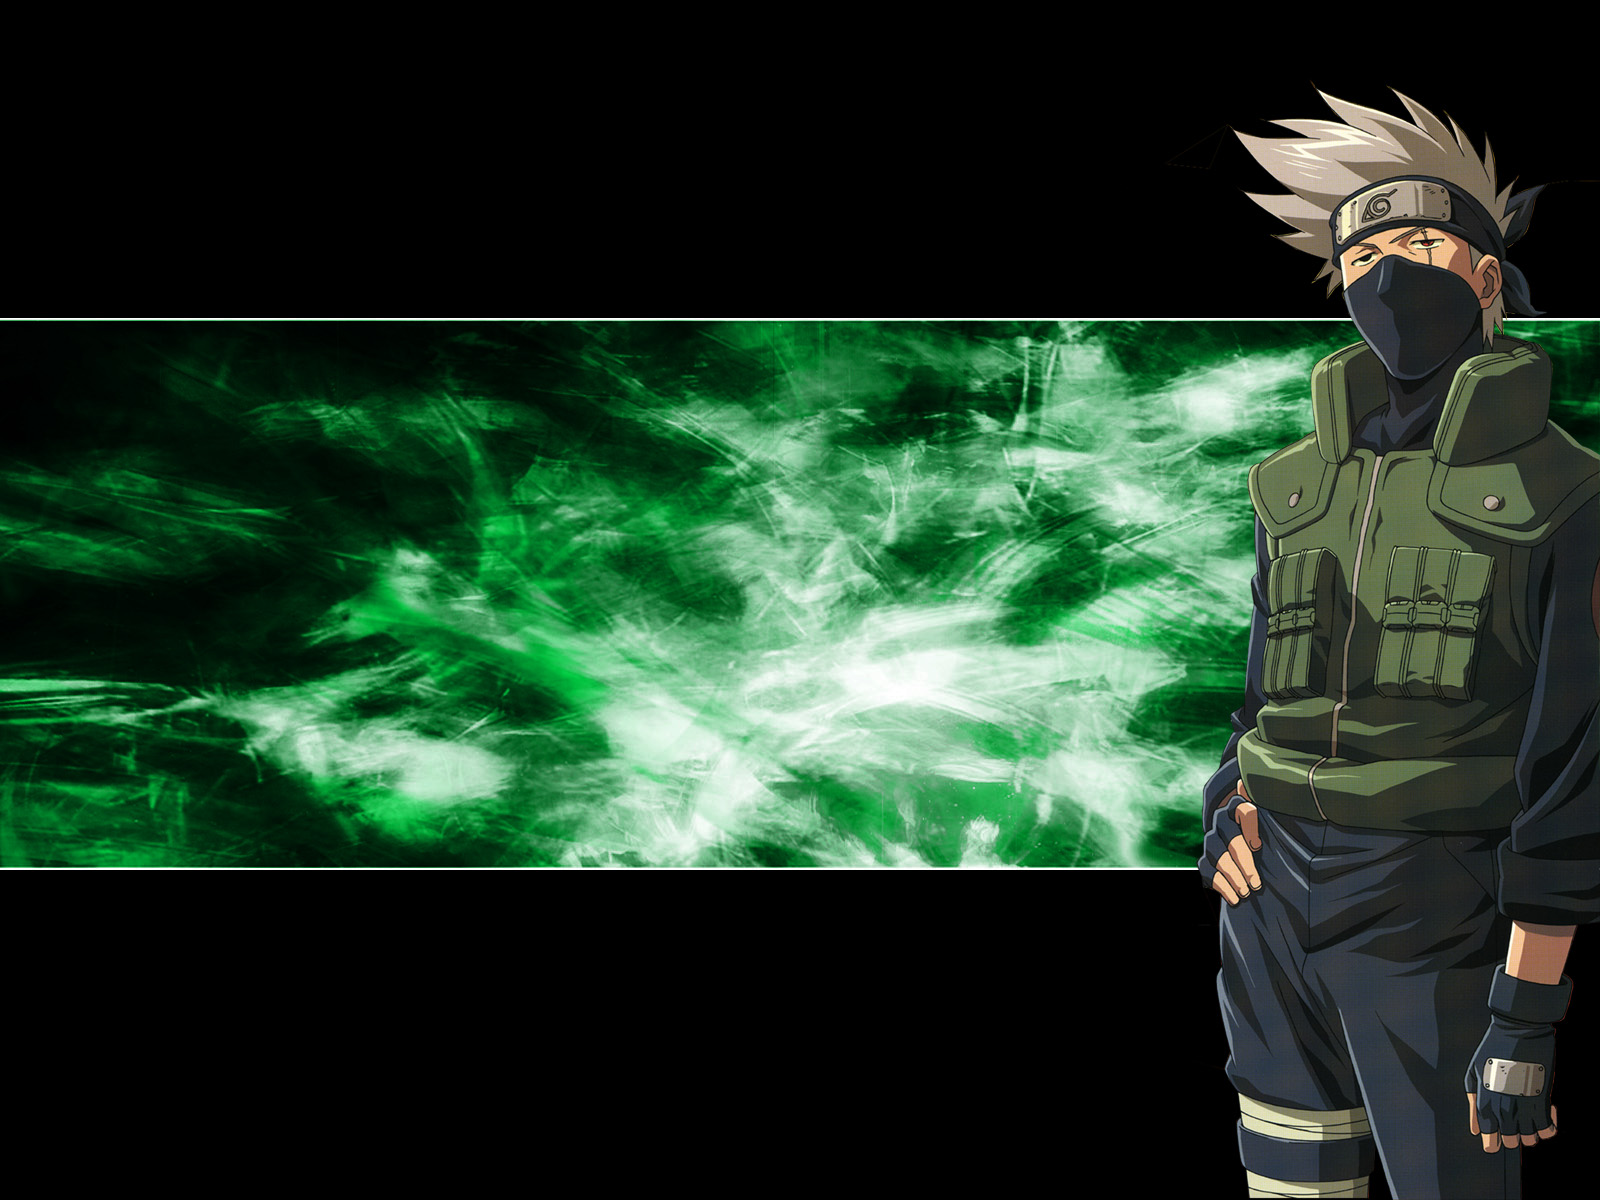 kakashi wallpaper kakashi wallpaper 1600x1200